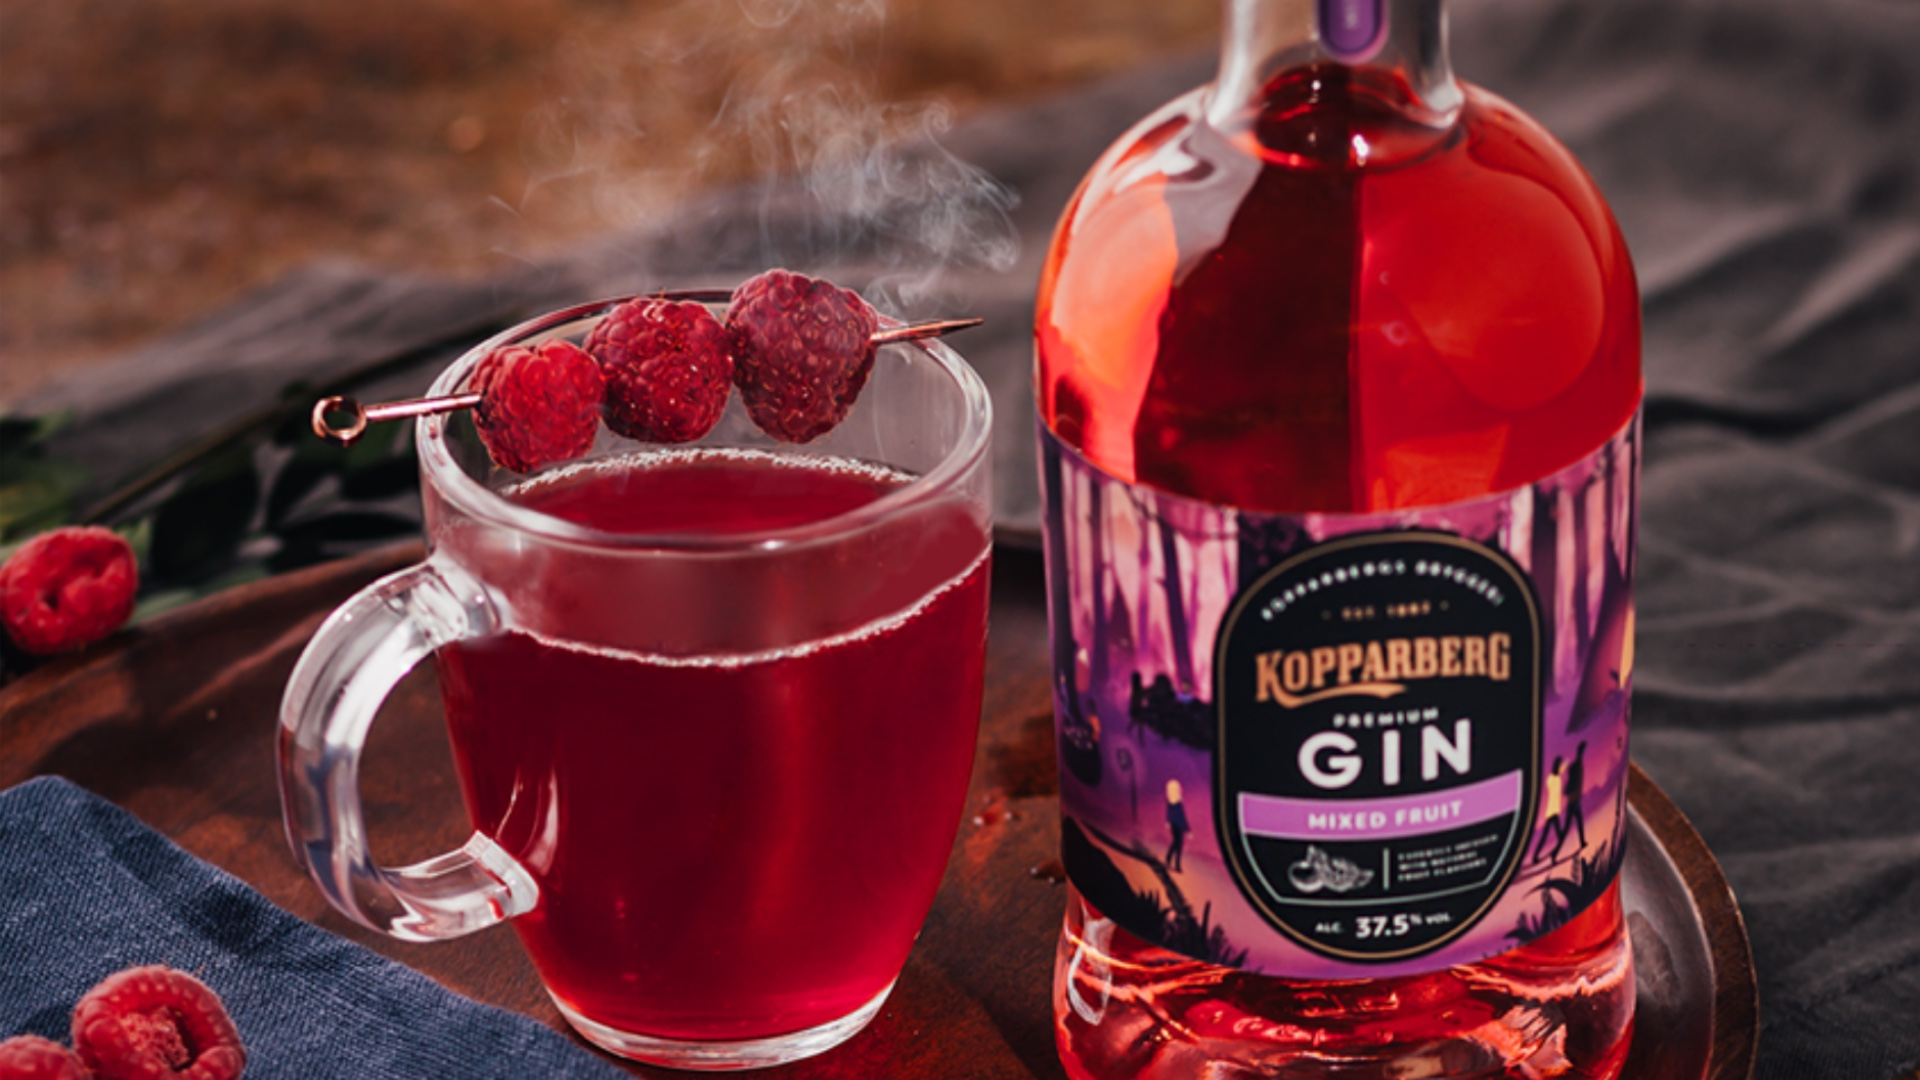 Autumnal cocktail inspo to leave you shaken and stirred! - Kopparberg Gin.